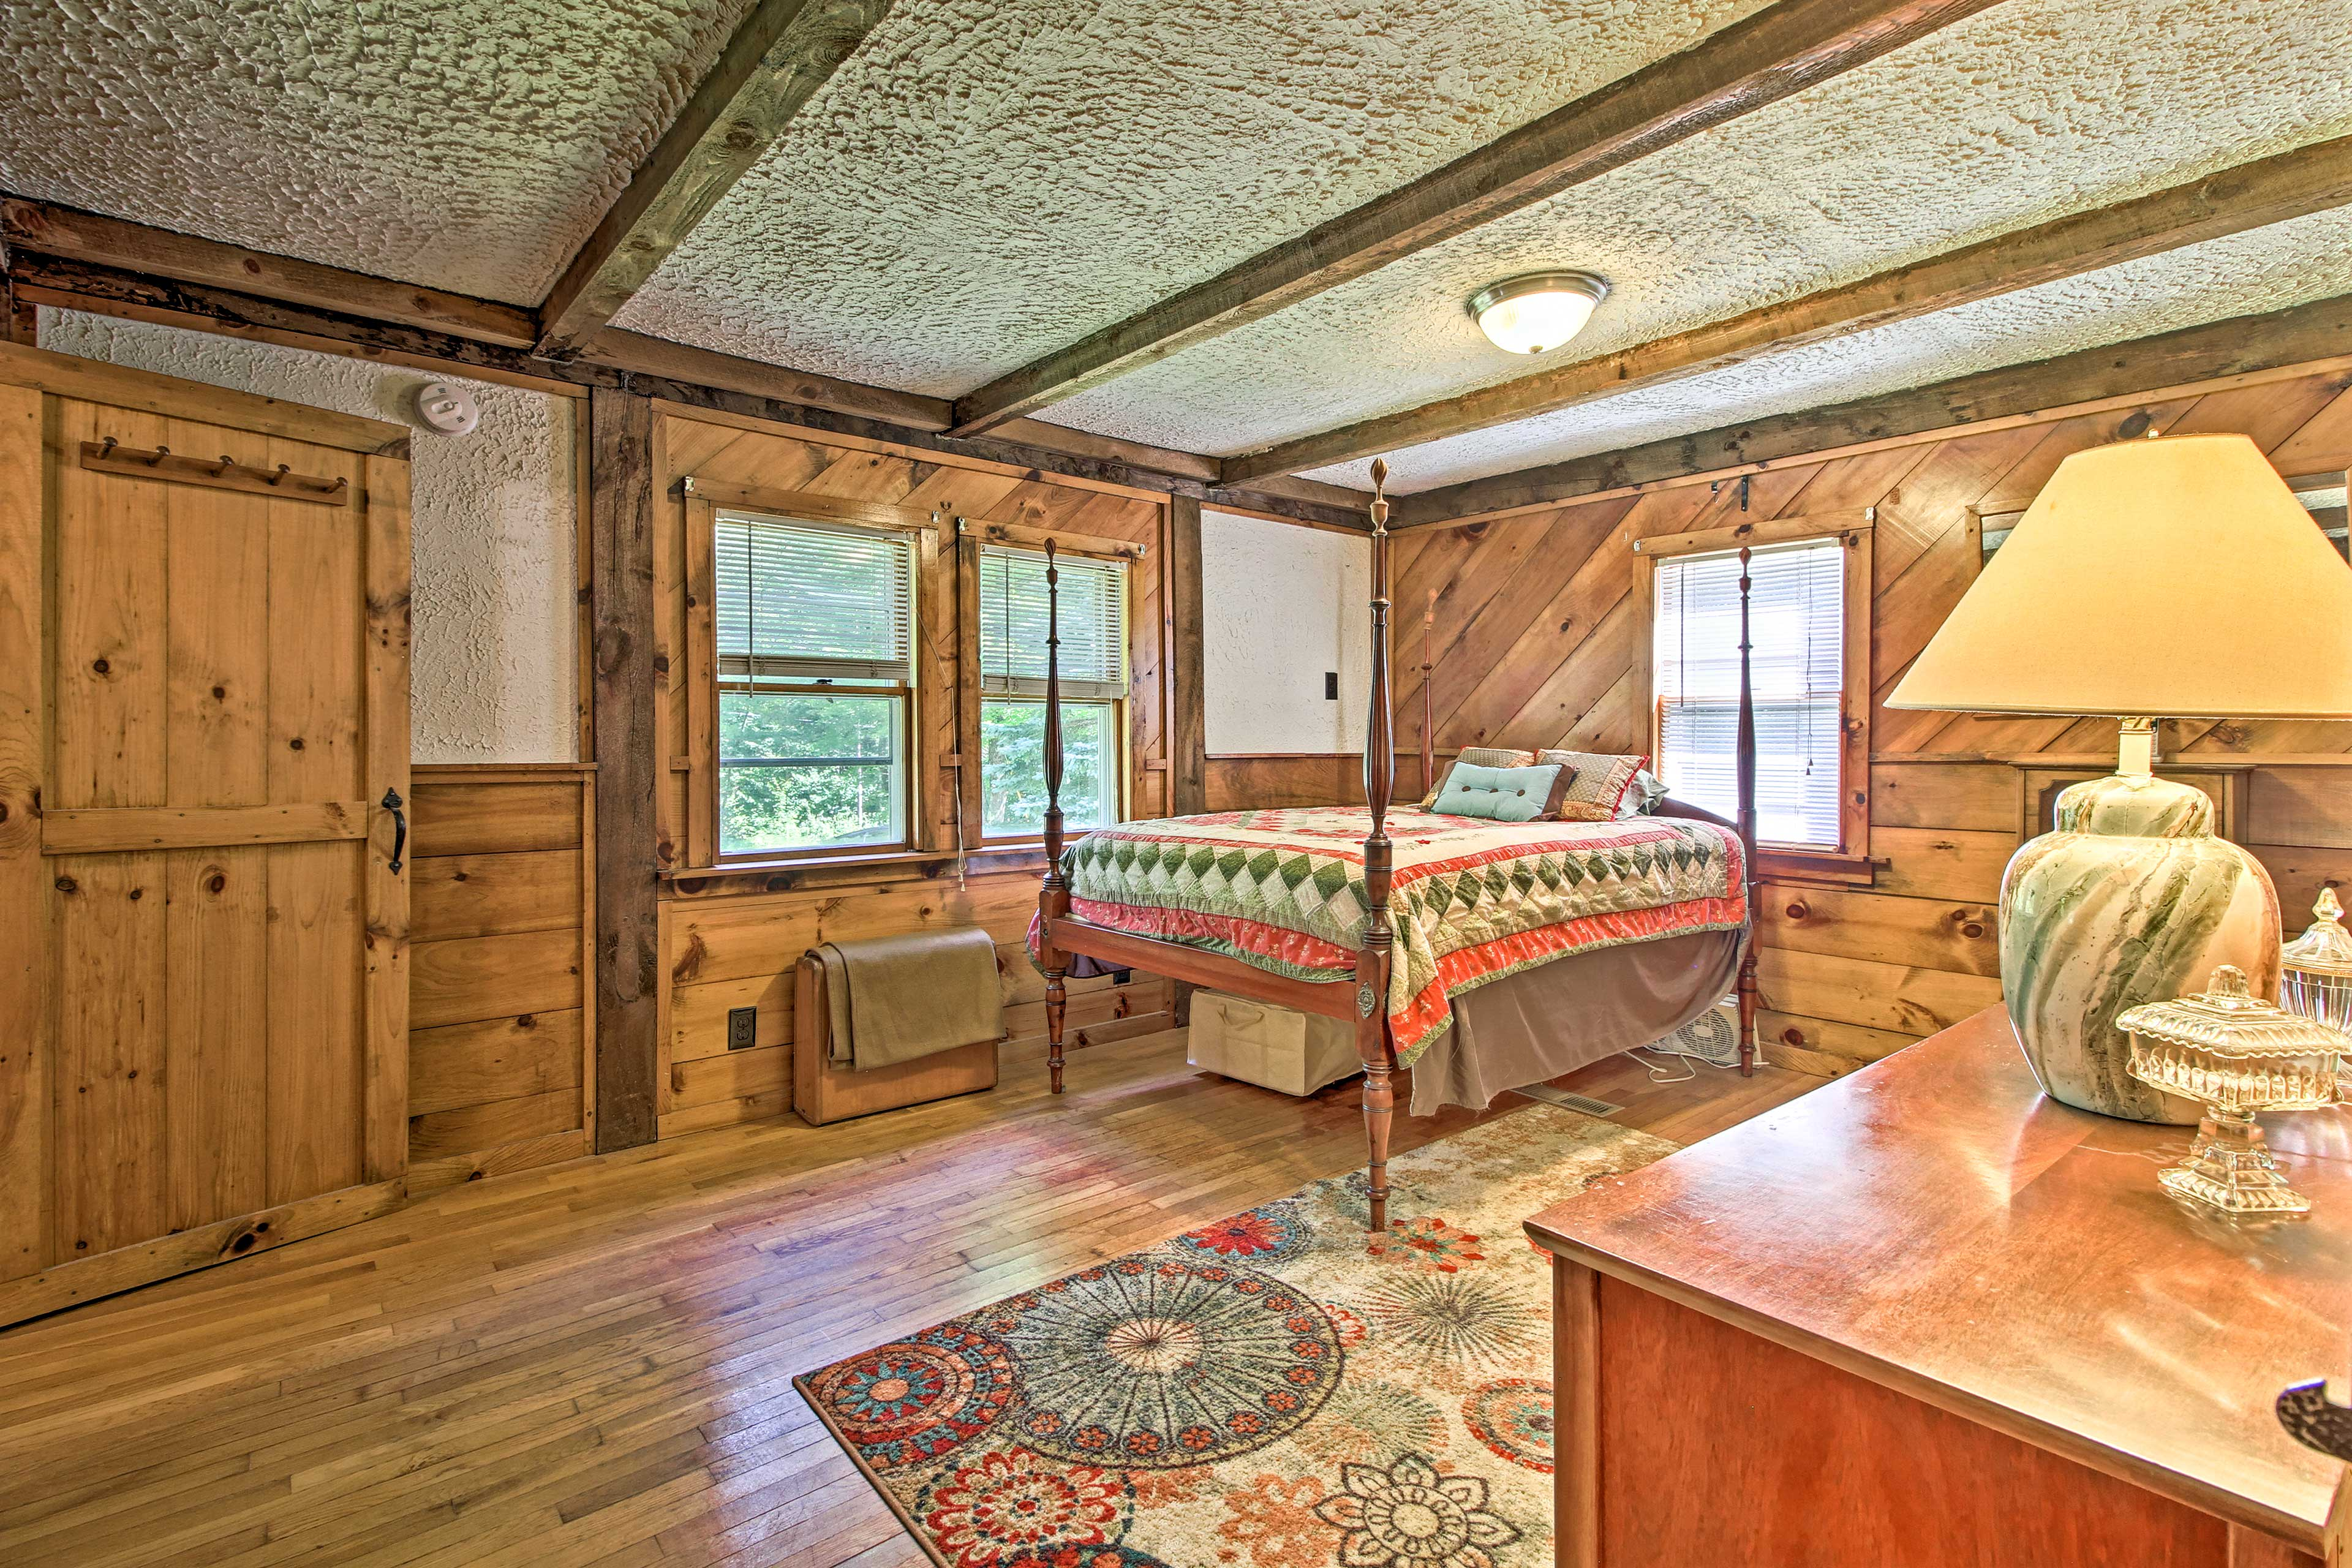 The spacious master bedroom boasts an antique queen bed.